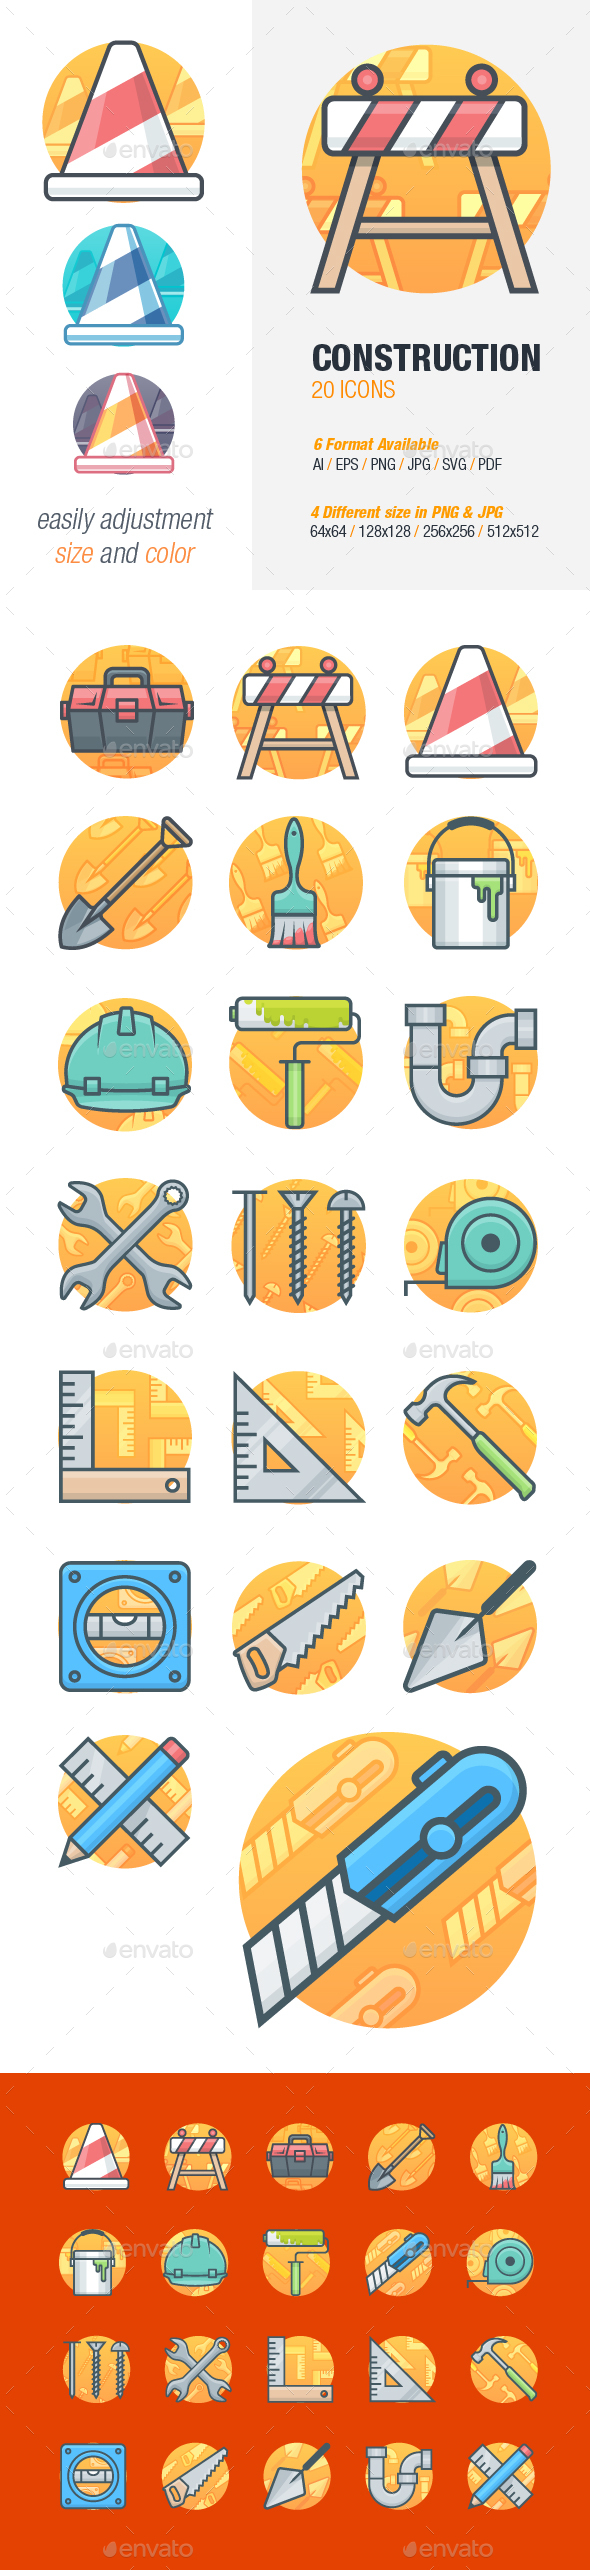 Construction and Tools Icons - Objects Icons